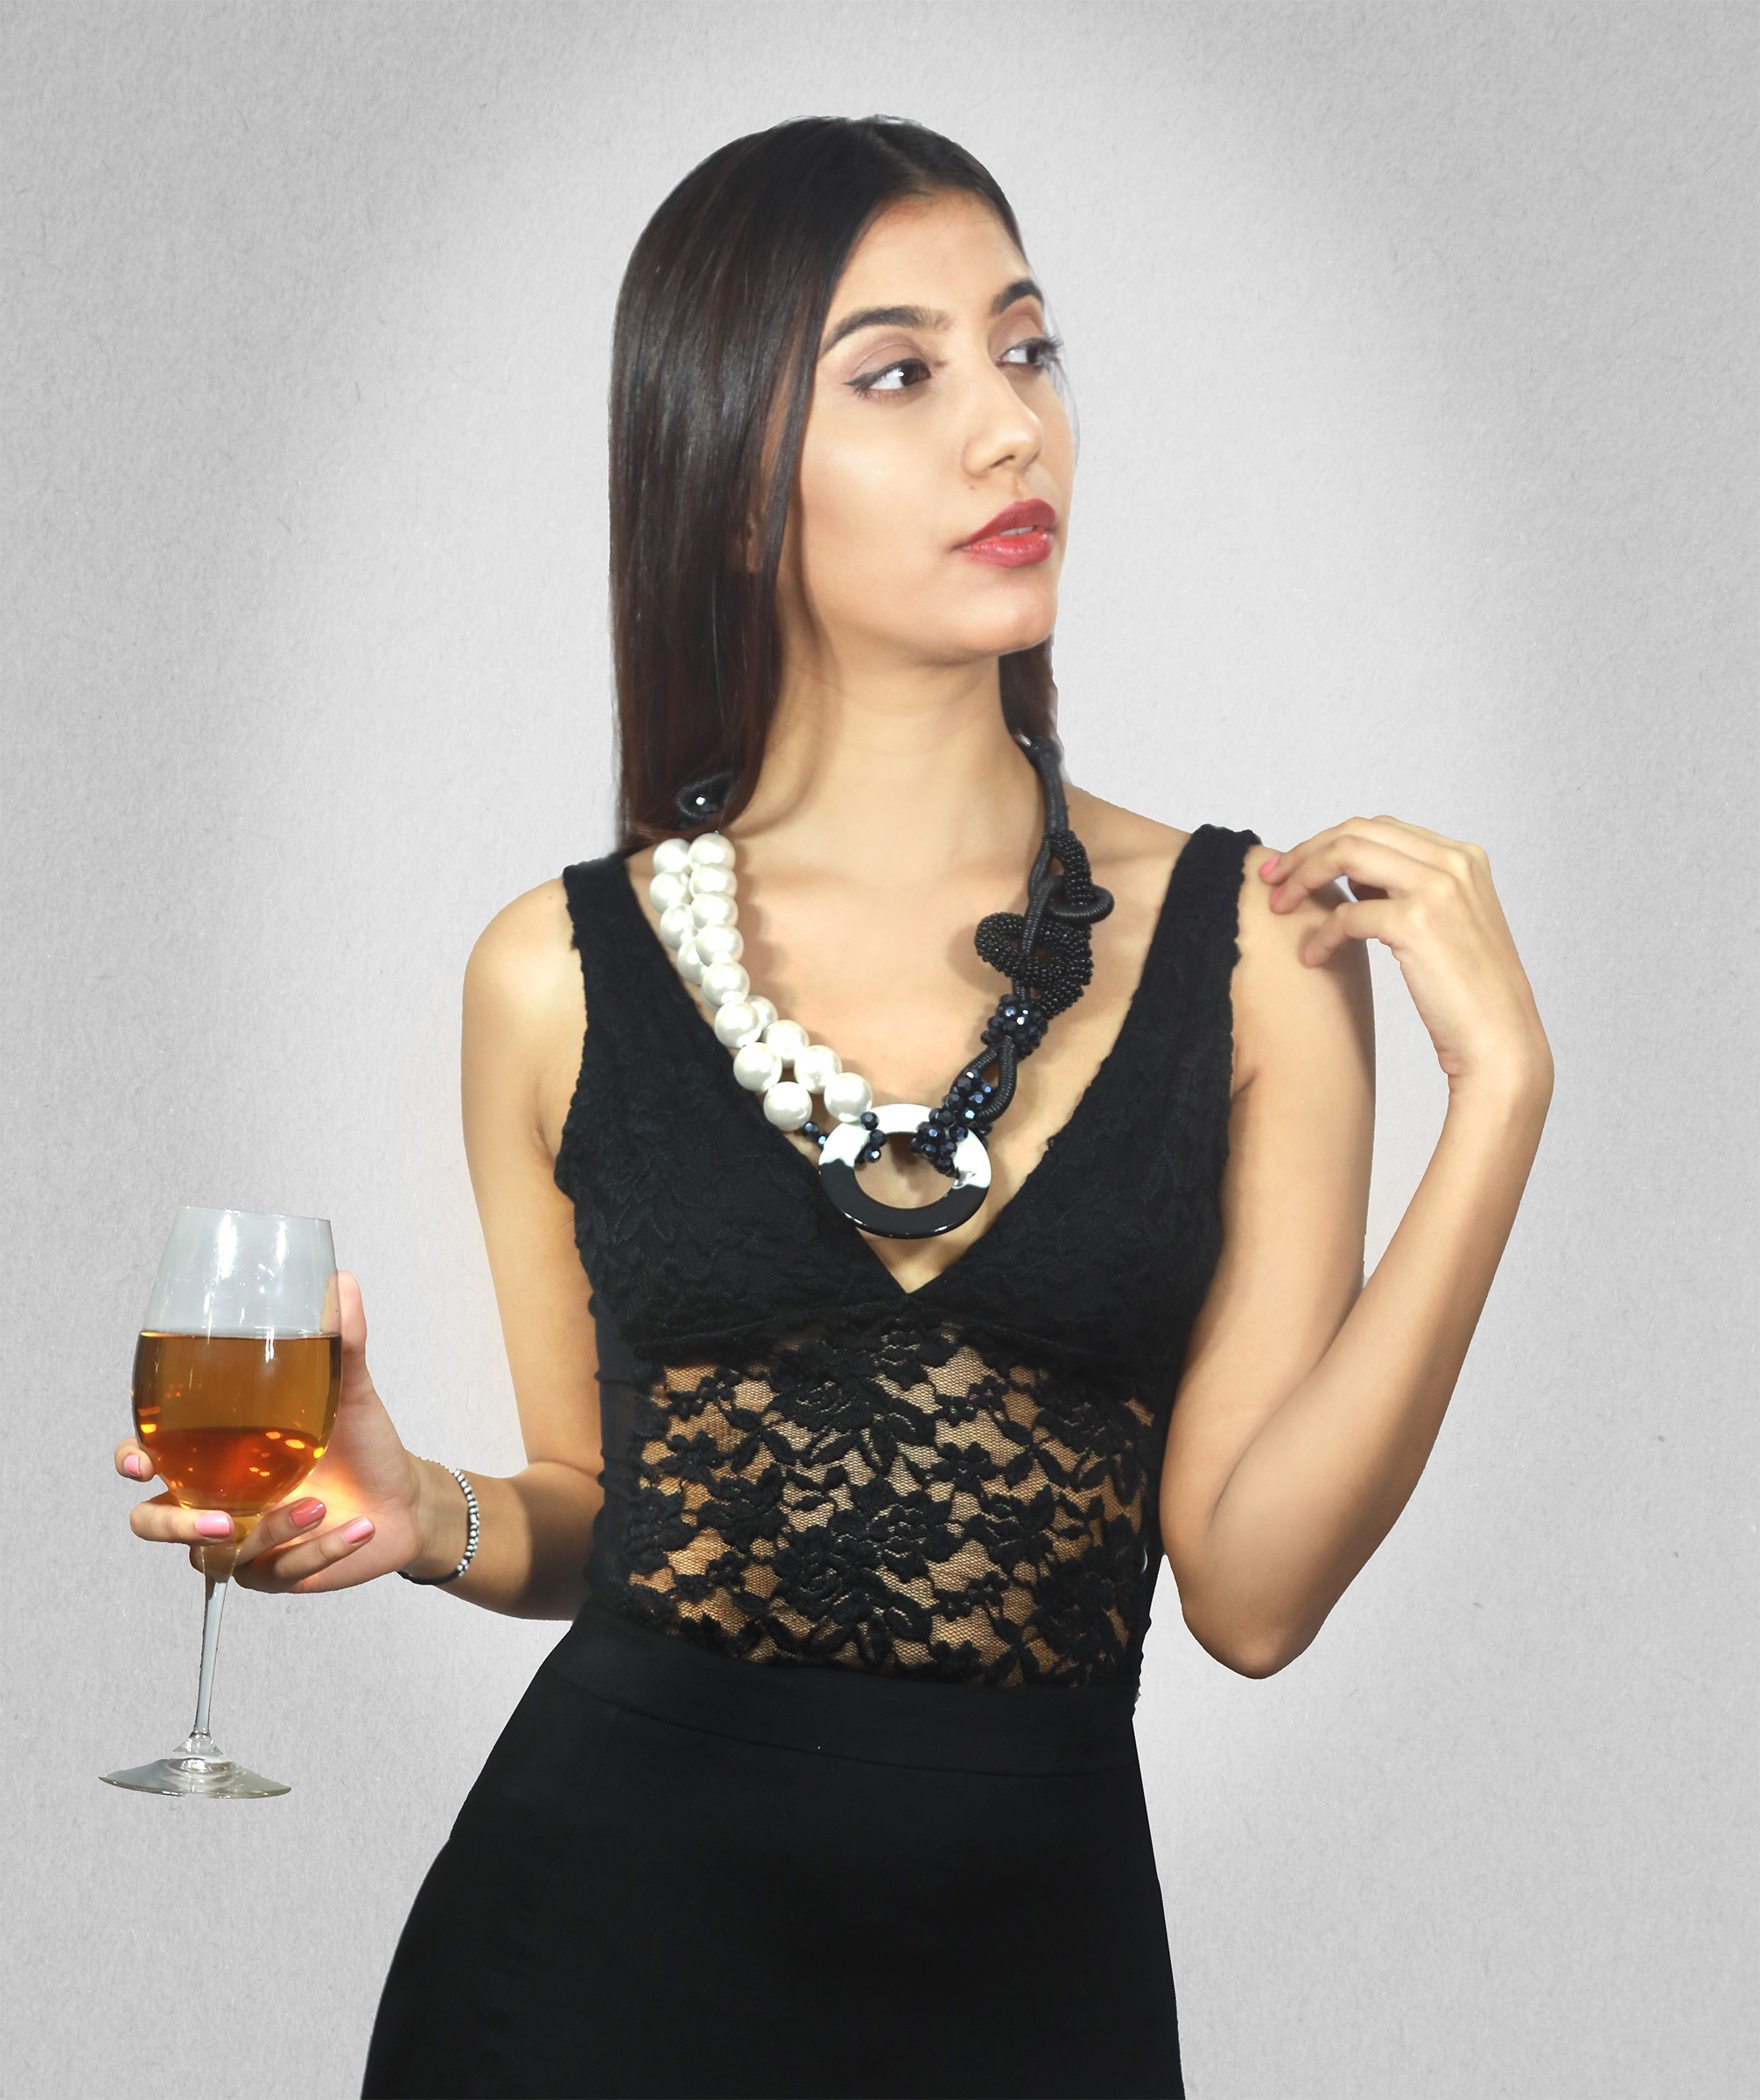 Sampriya Bhandare wearing Ying Yang Pearl Necklace